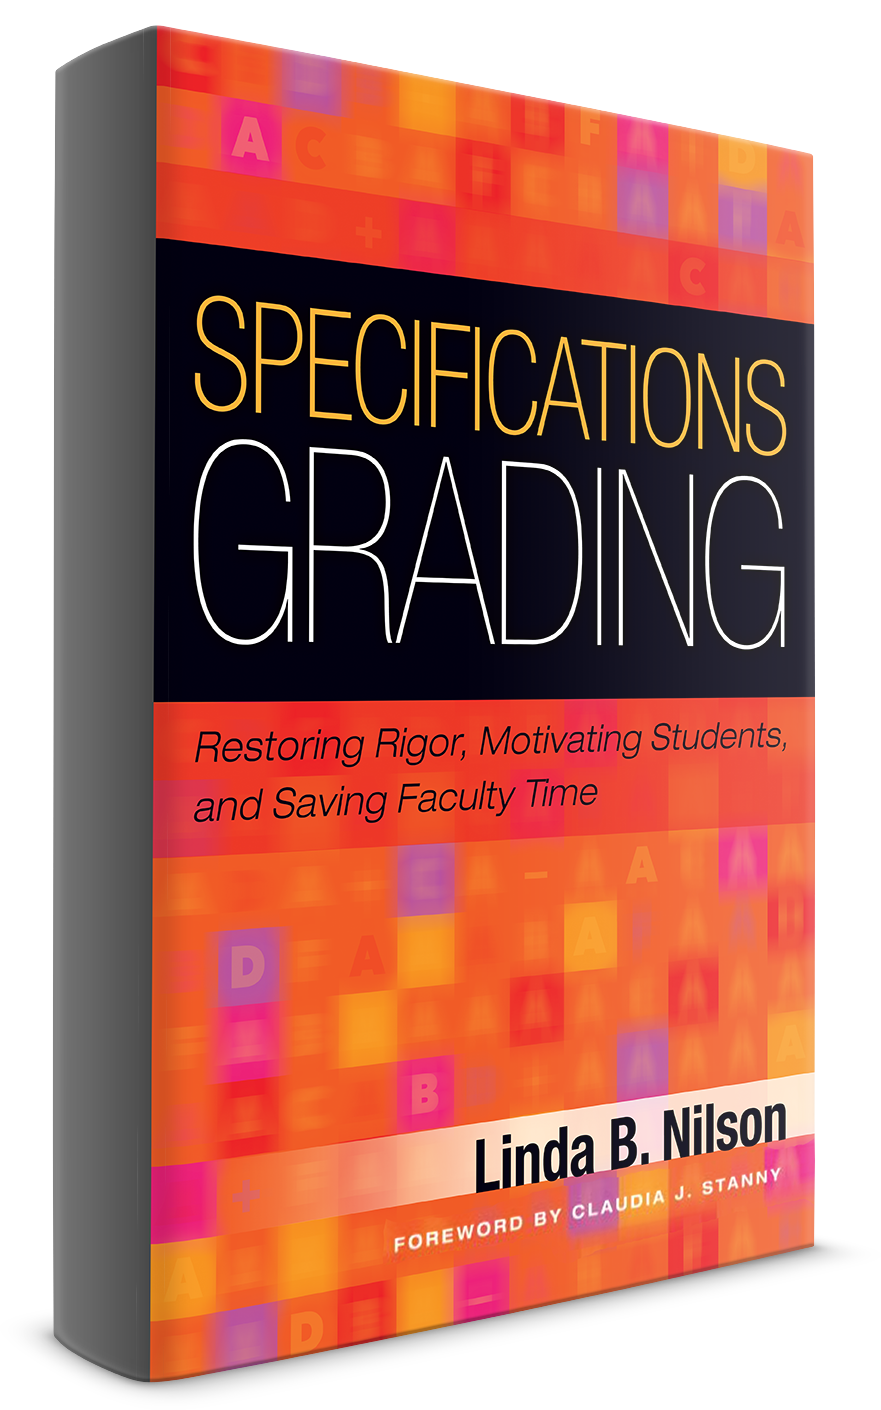 Specifications Grading